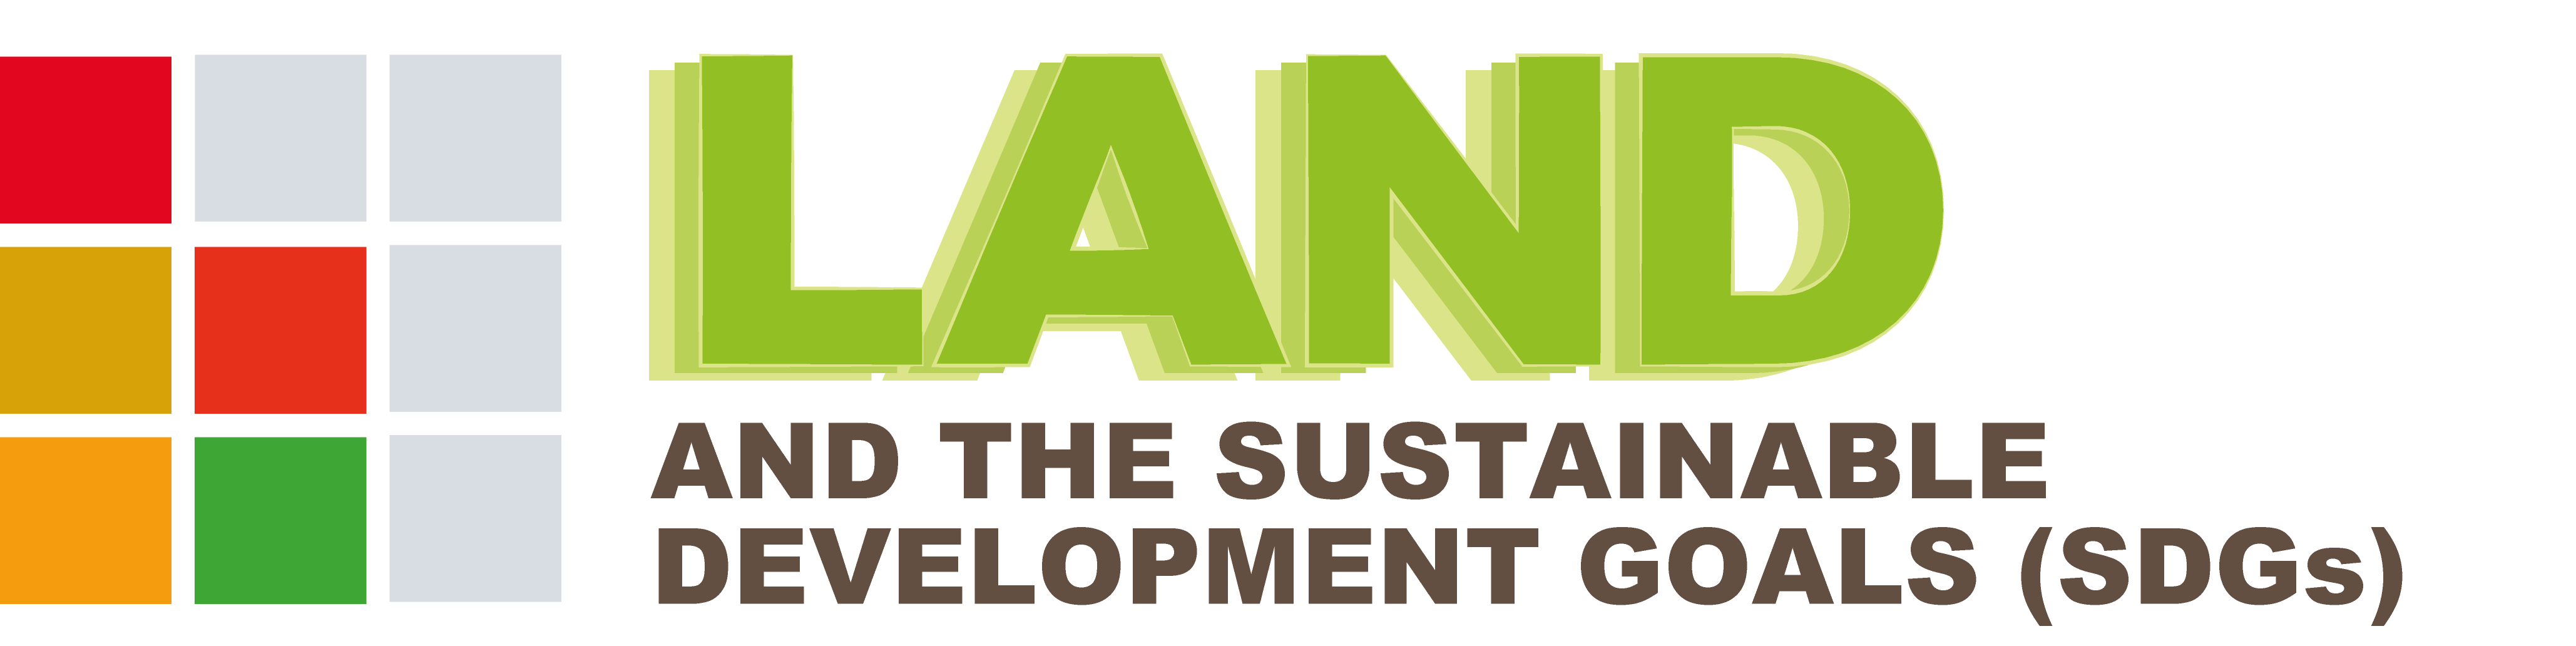 Land and the Sustainable Development Goals (SDGs)